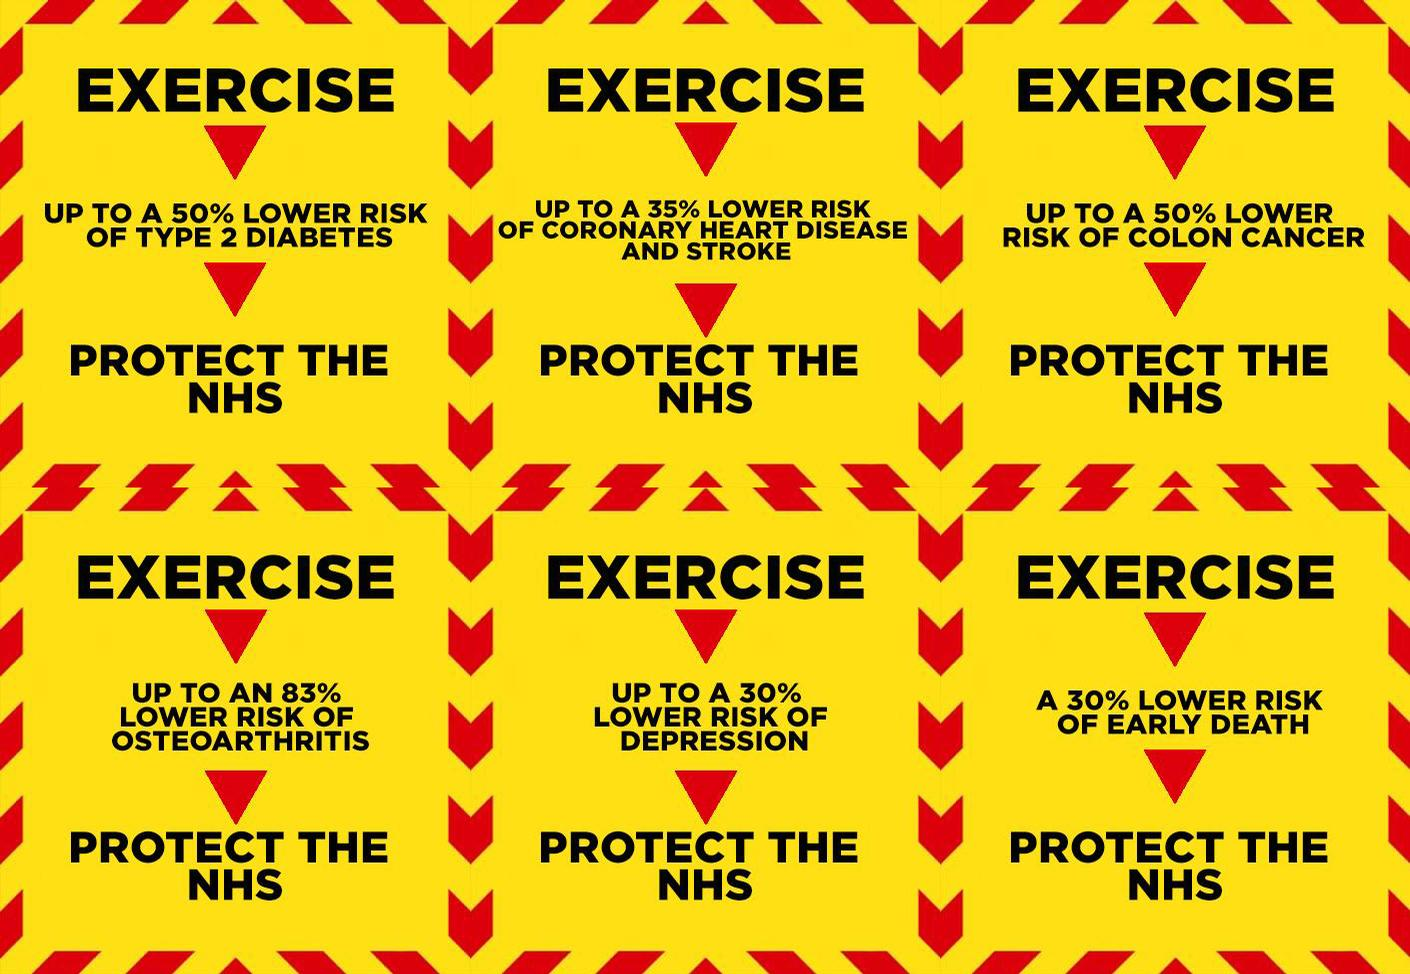 The posters, carrying the message of 'Exercise – Protect the NHS' were created by Daniel Ward / Daniel Ward